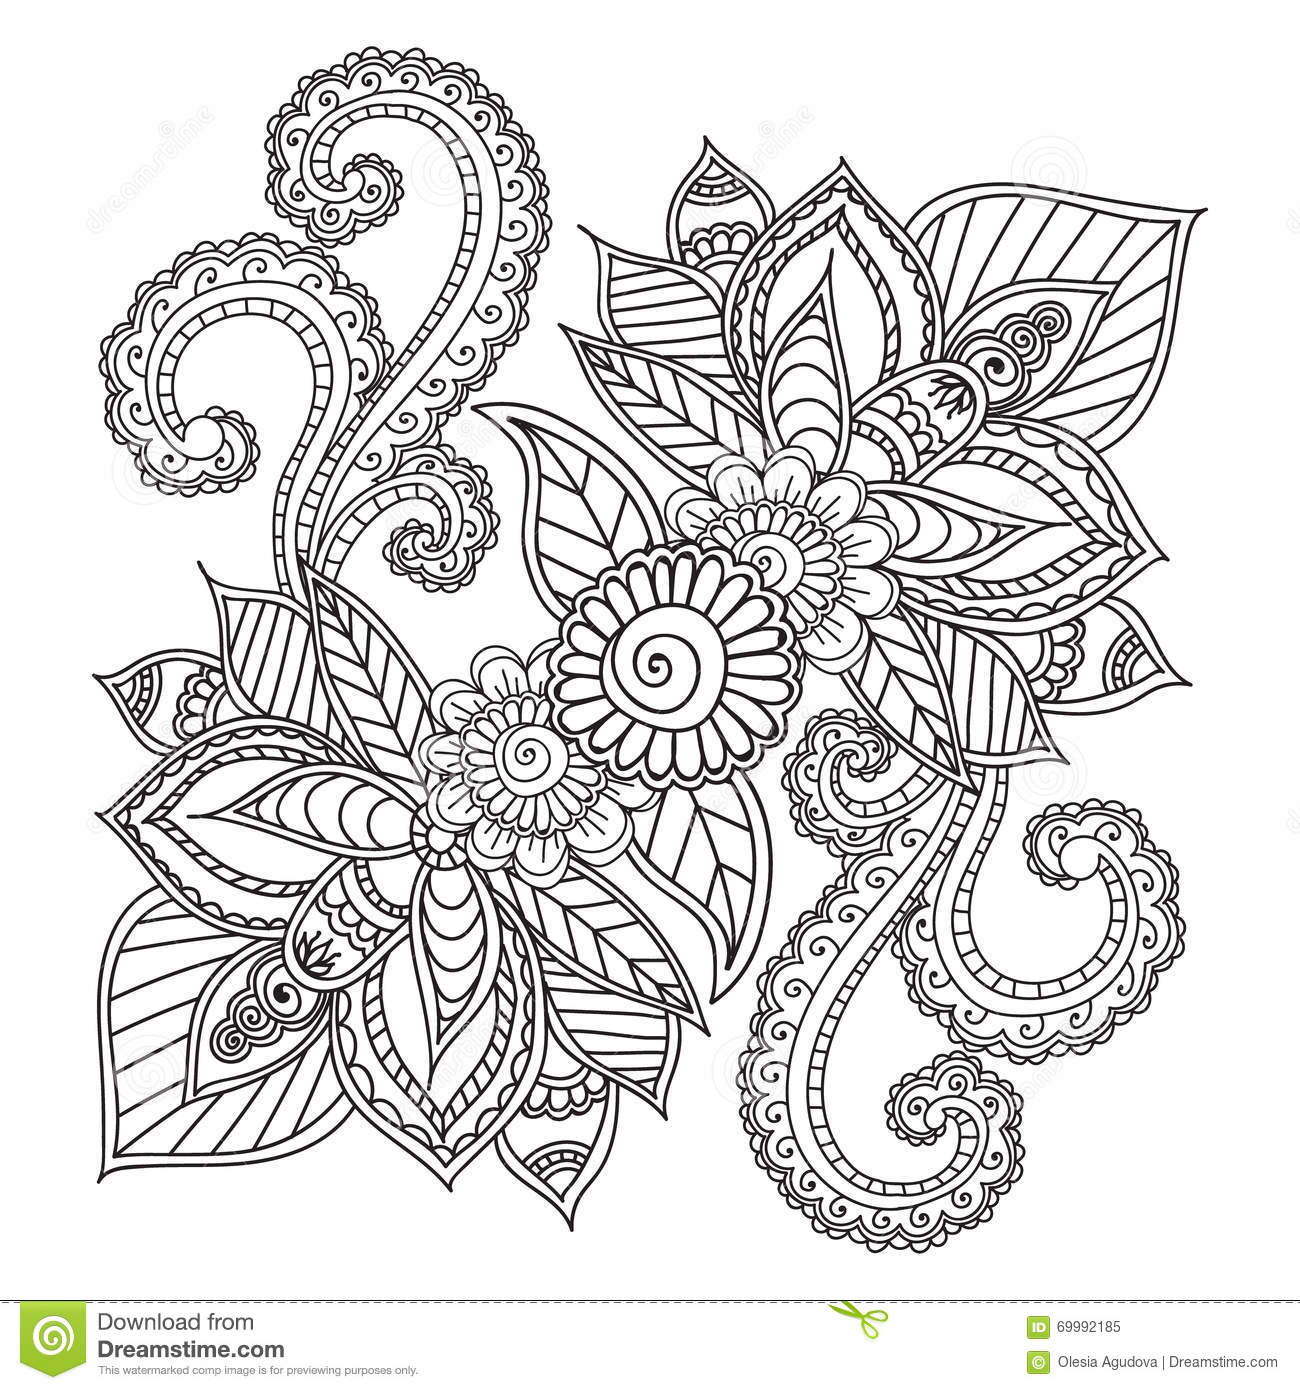 Abstract Turtle Coloring Pages : Abstract turtle coloring pages for adults